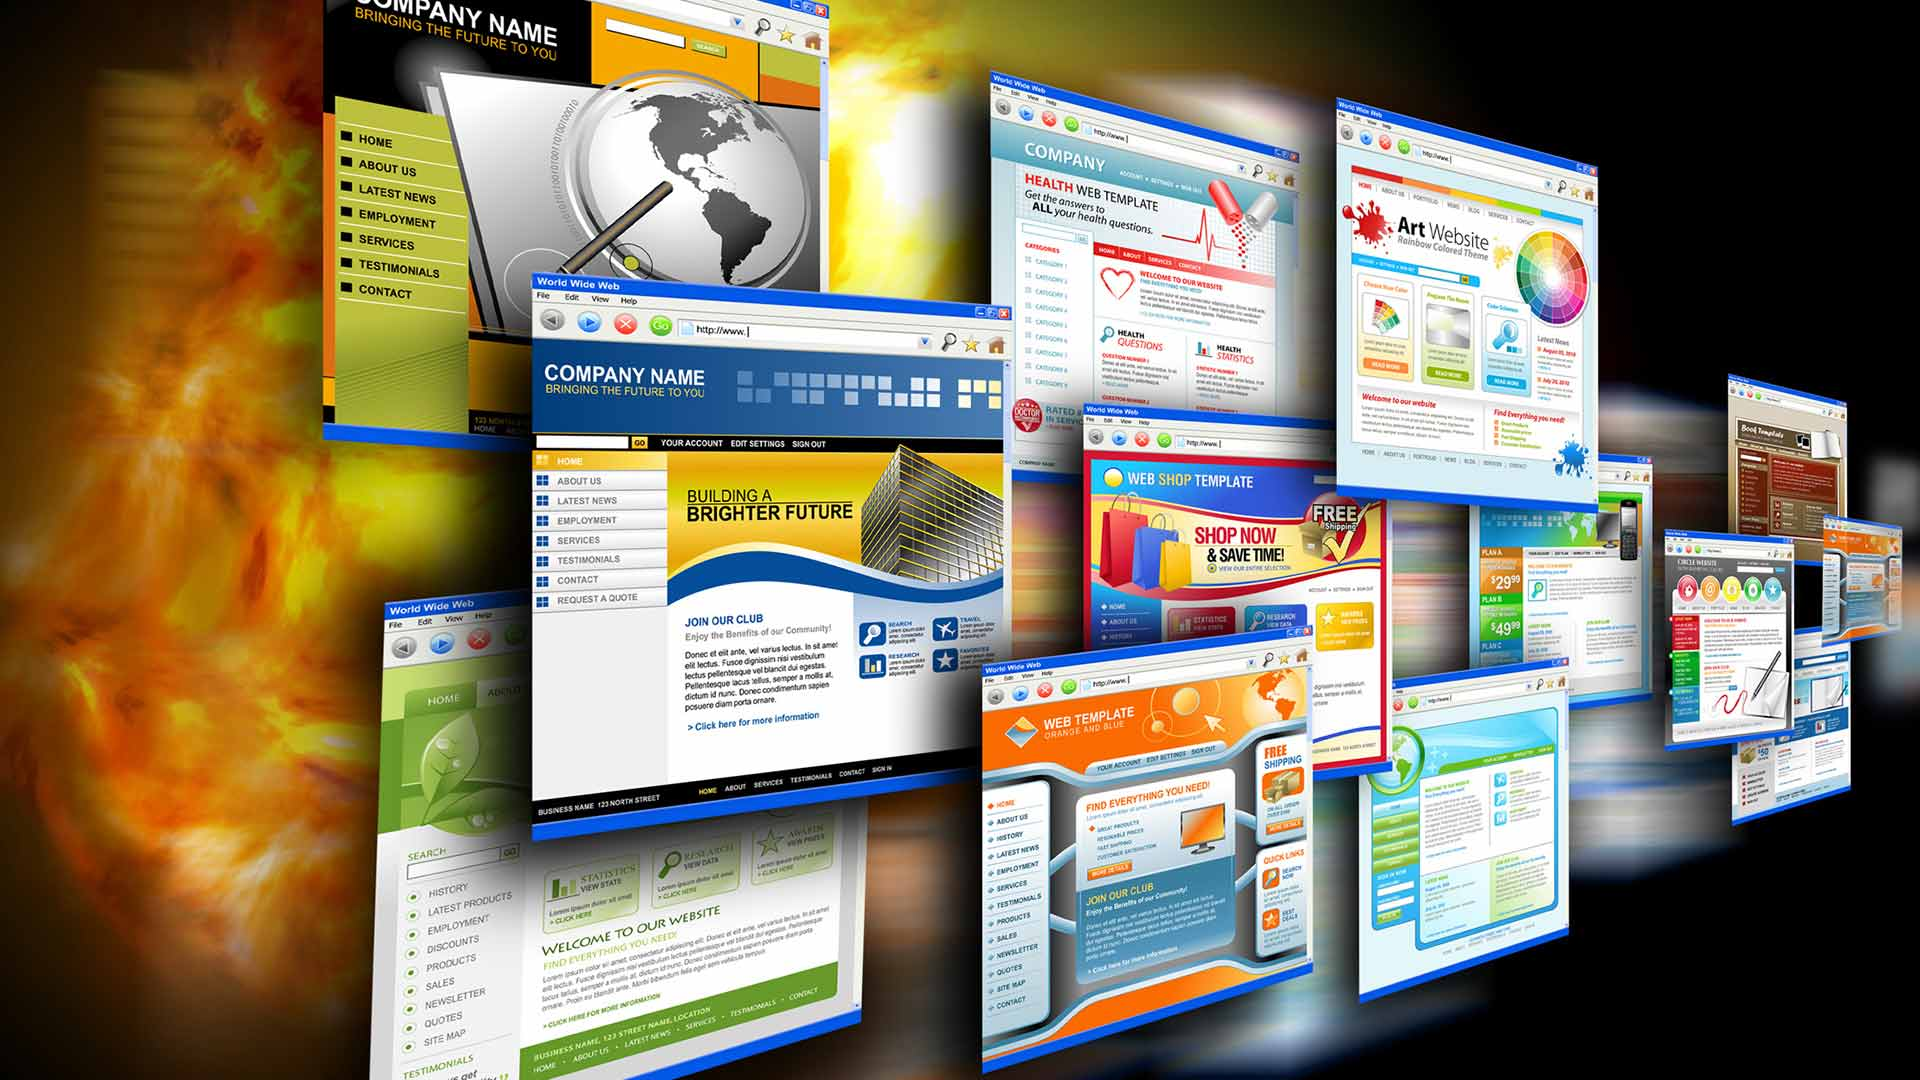 types of websites - Website-A Way to Find Customers